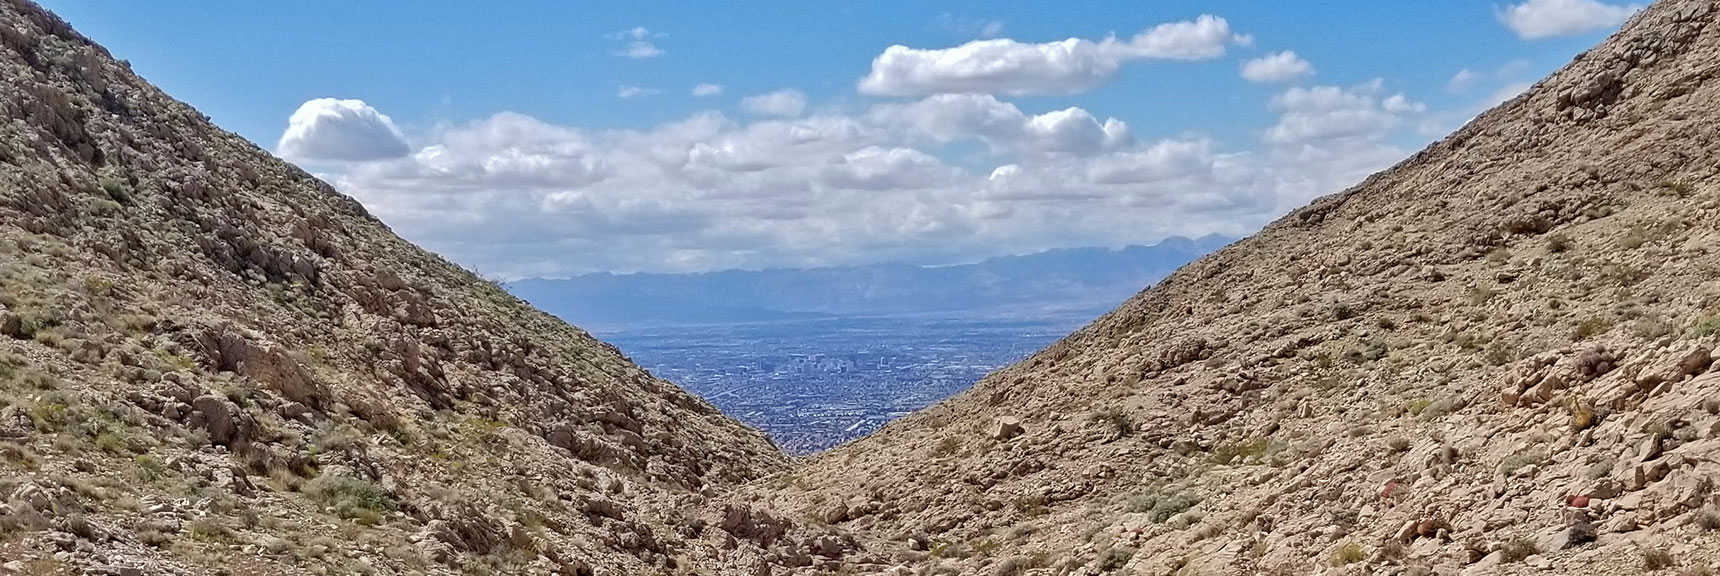 View of Las Vegas Valley from Saddle of Frenchman Mountain, Nevada